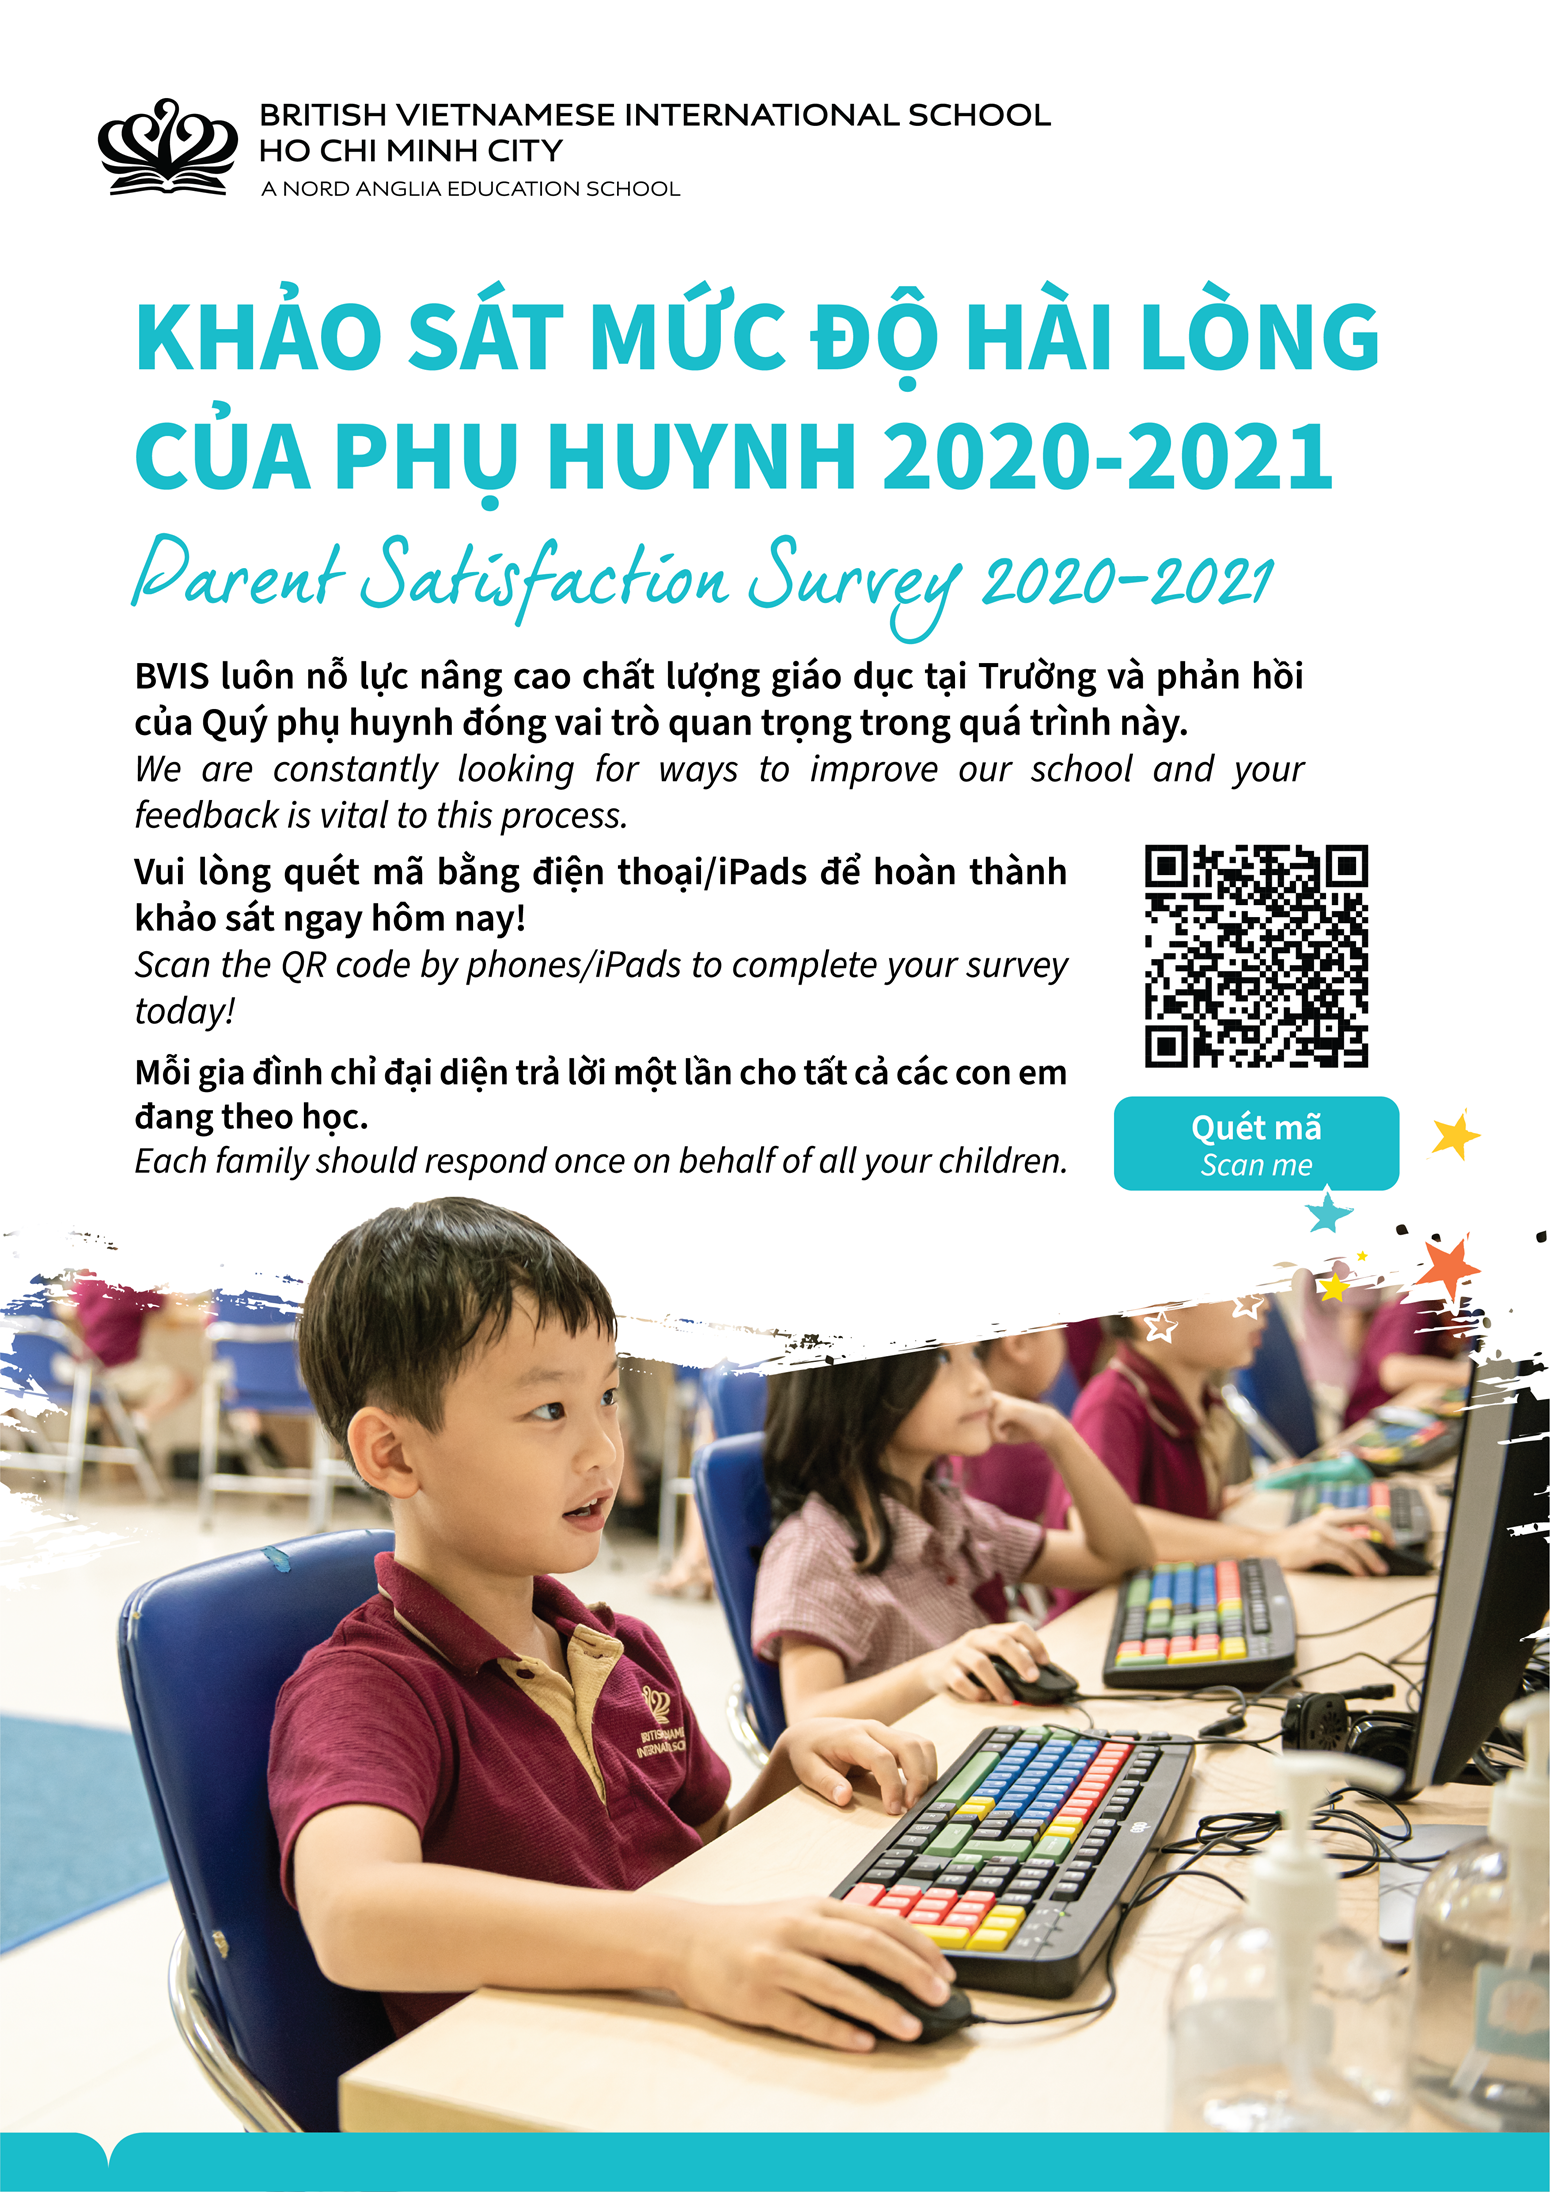 BVIS-HCMC-Parent-Satisfaction-Survey-2021